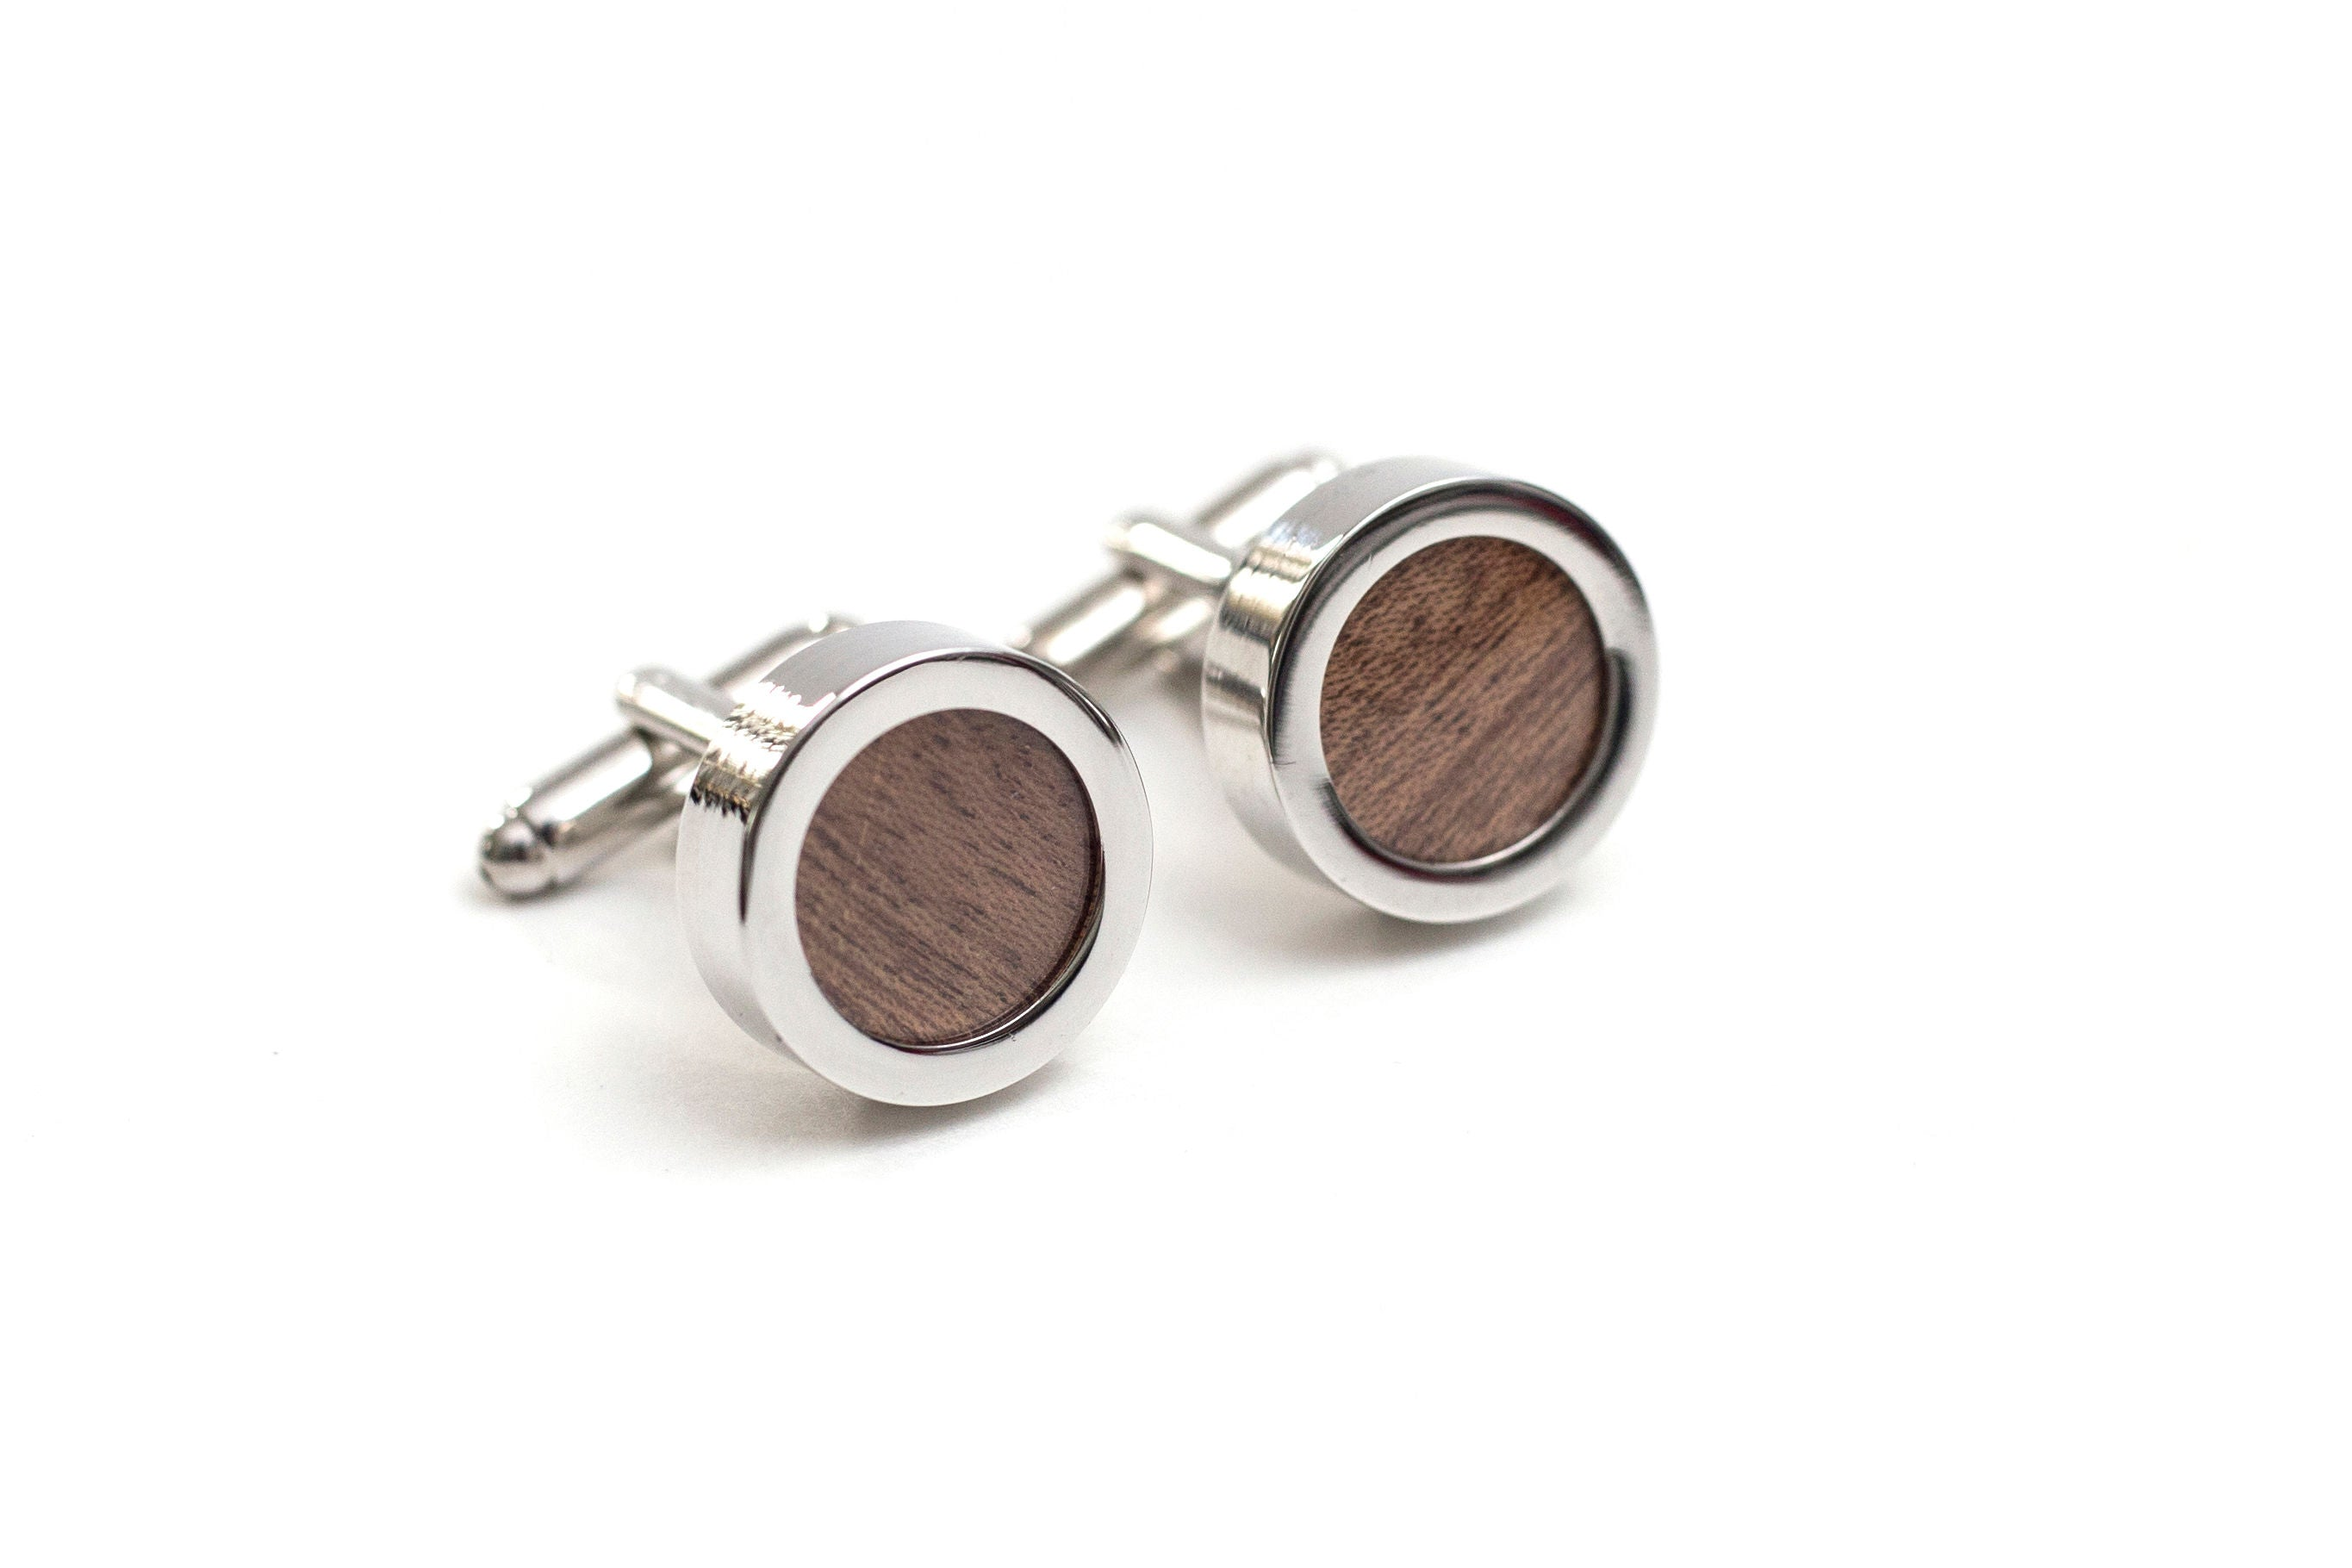 Wood Grain Cuff Links